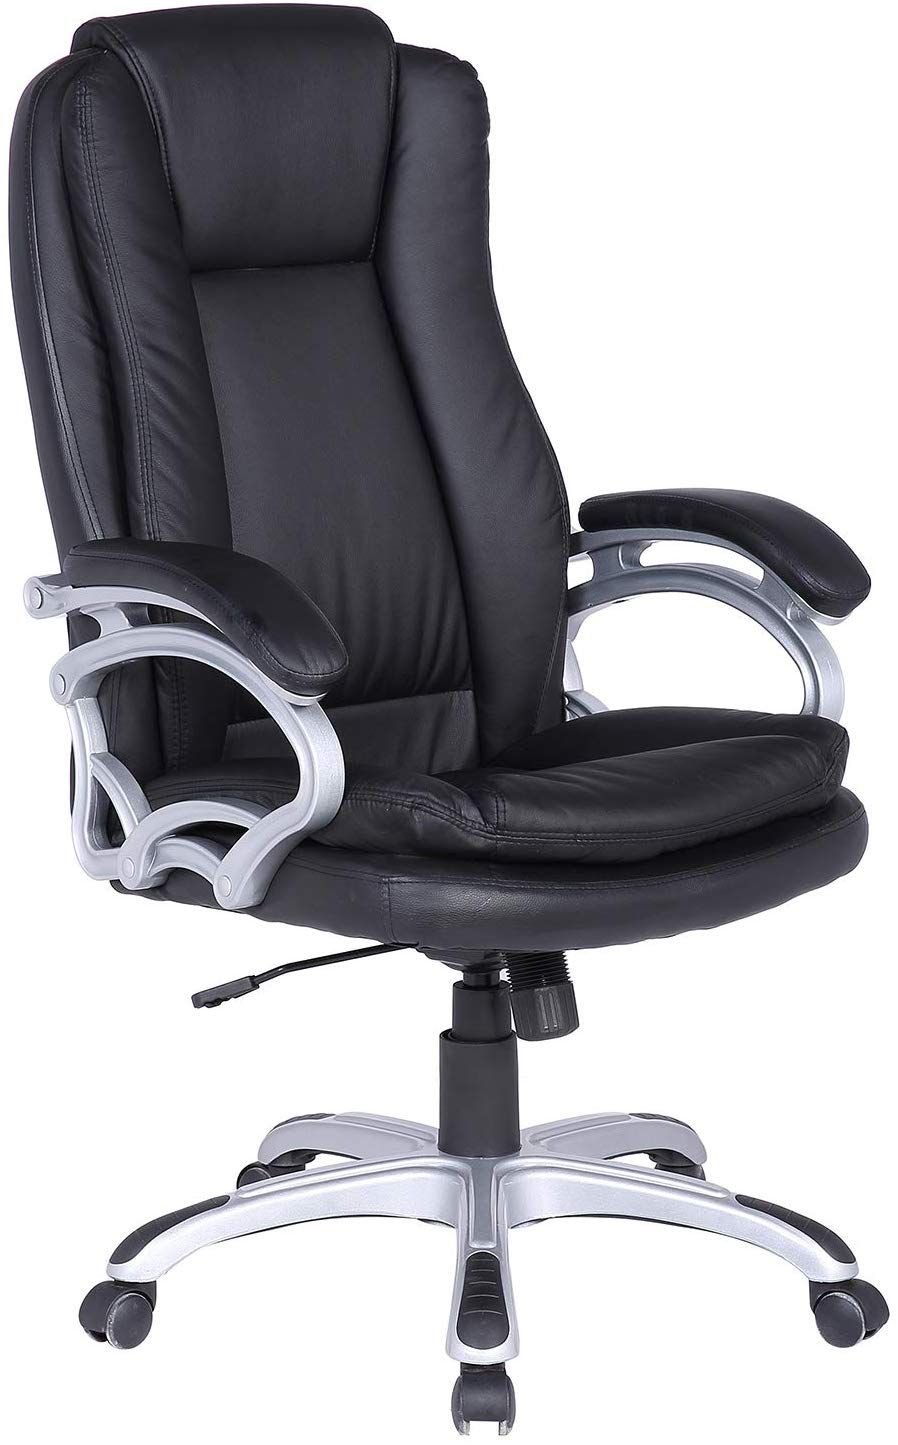 Lch highback office chair with adjustable reclining angle